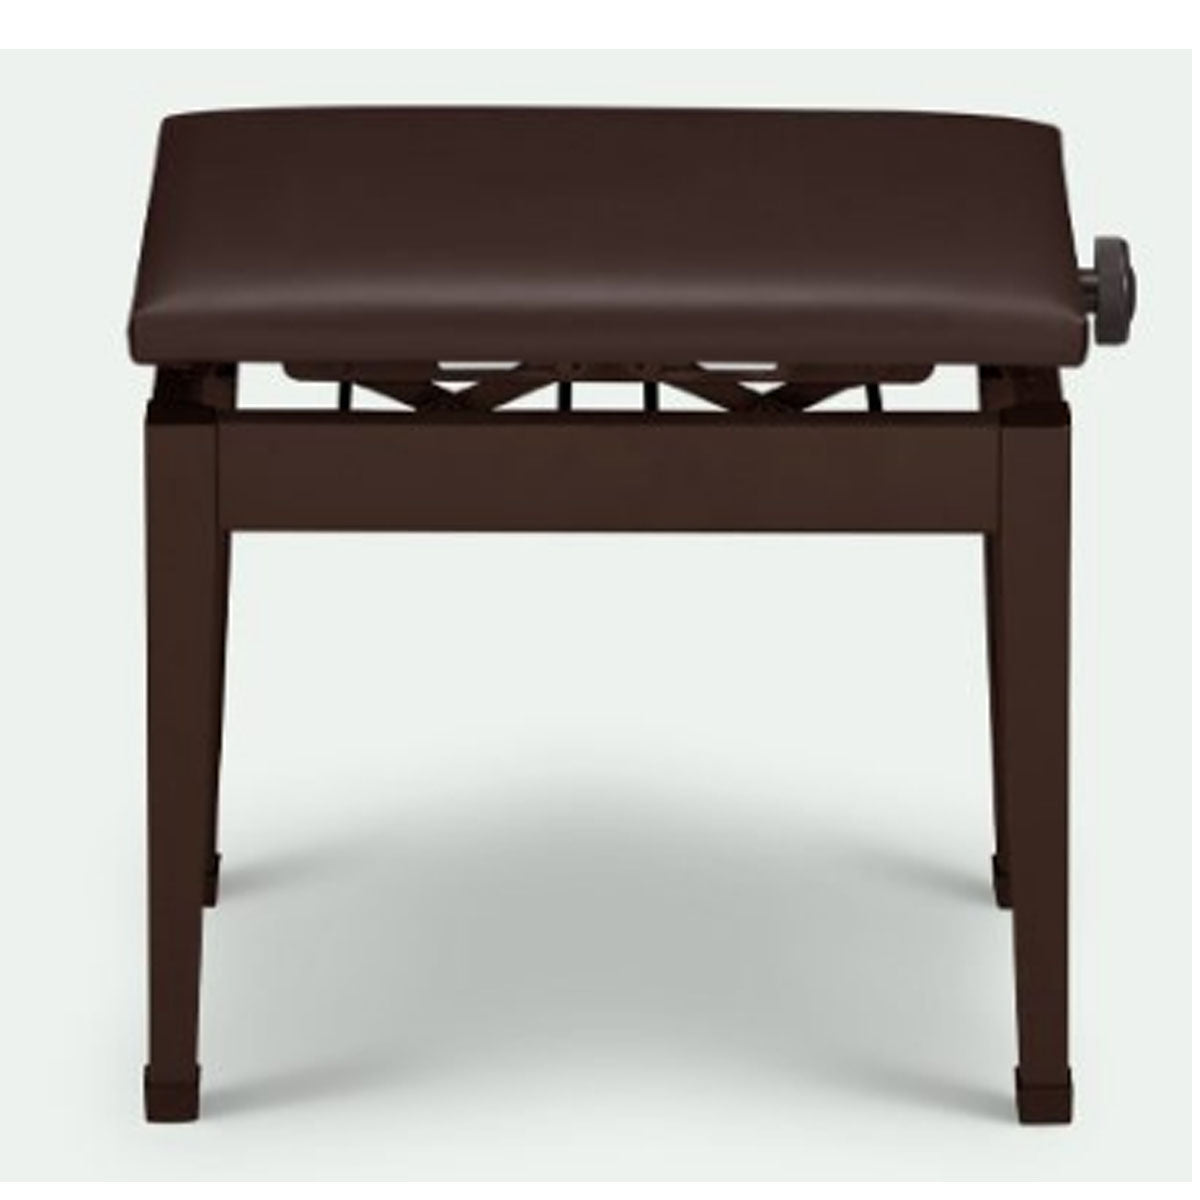 Casio PBBN Adjustable Piano Bench Brown